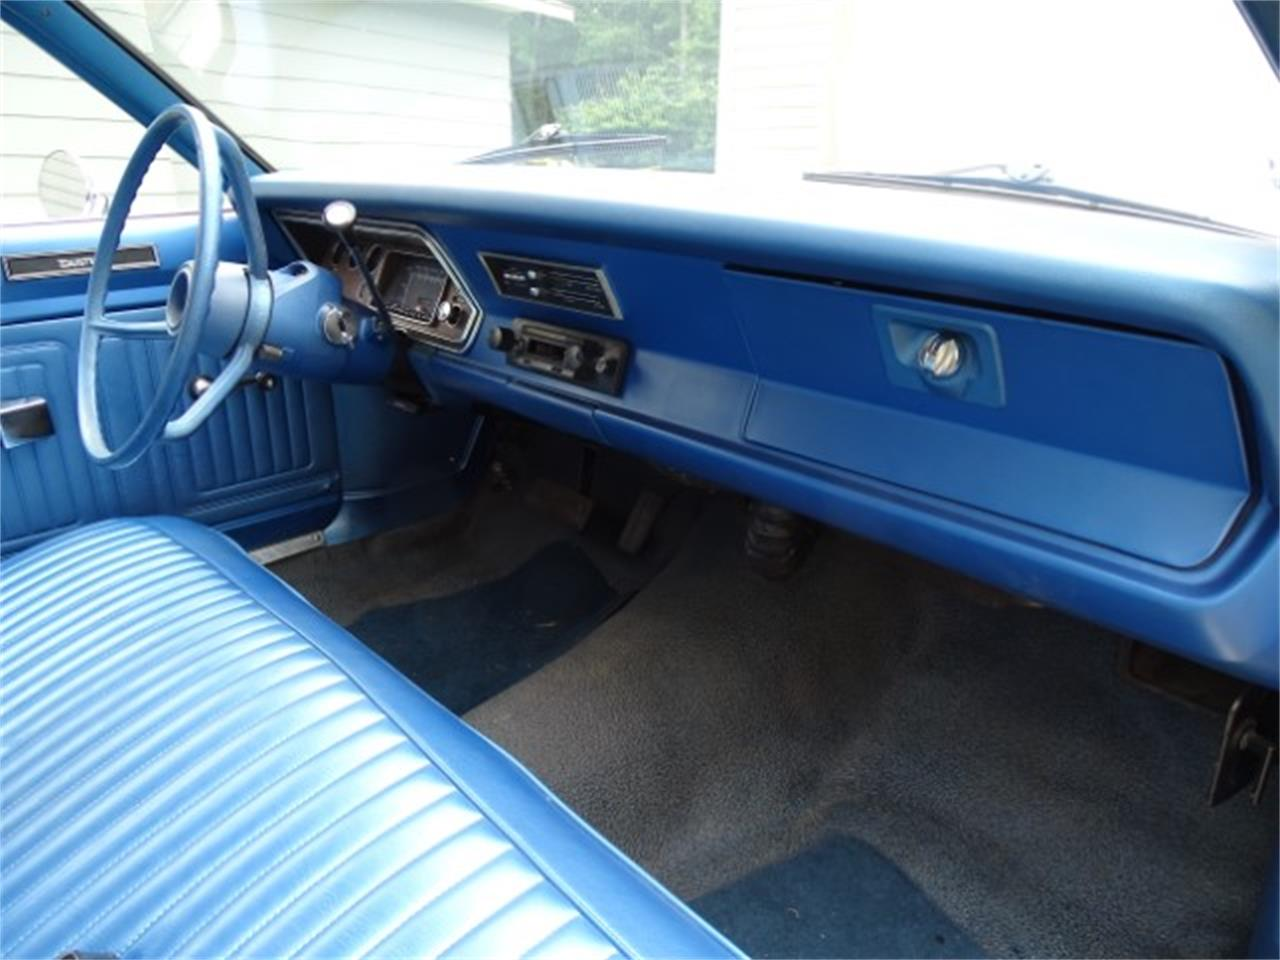 1972 Plymouth Duster for sale in Prior Lake, MN – photo 31